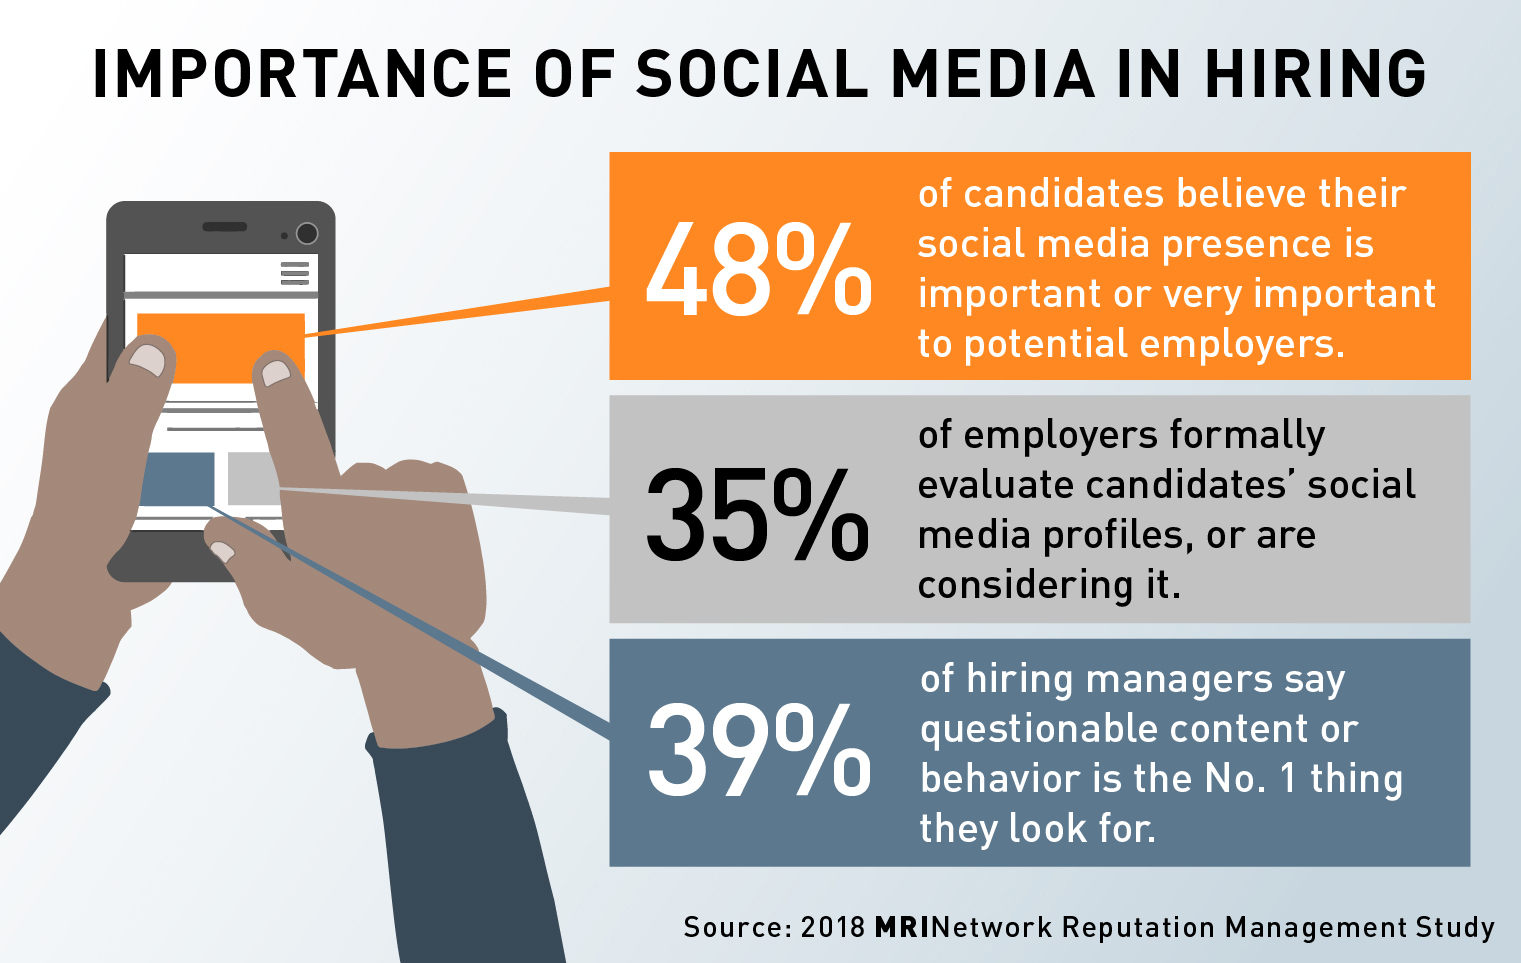 How Important is Social Media in the Hiring Process